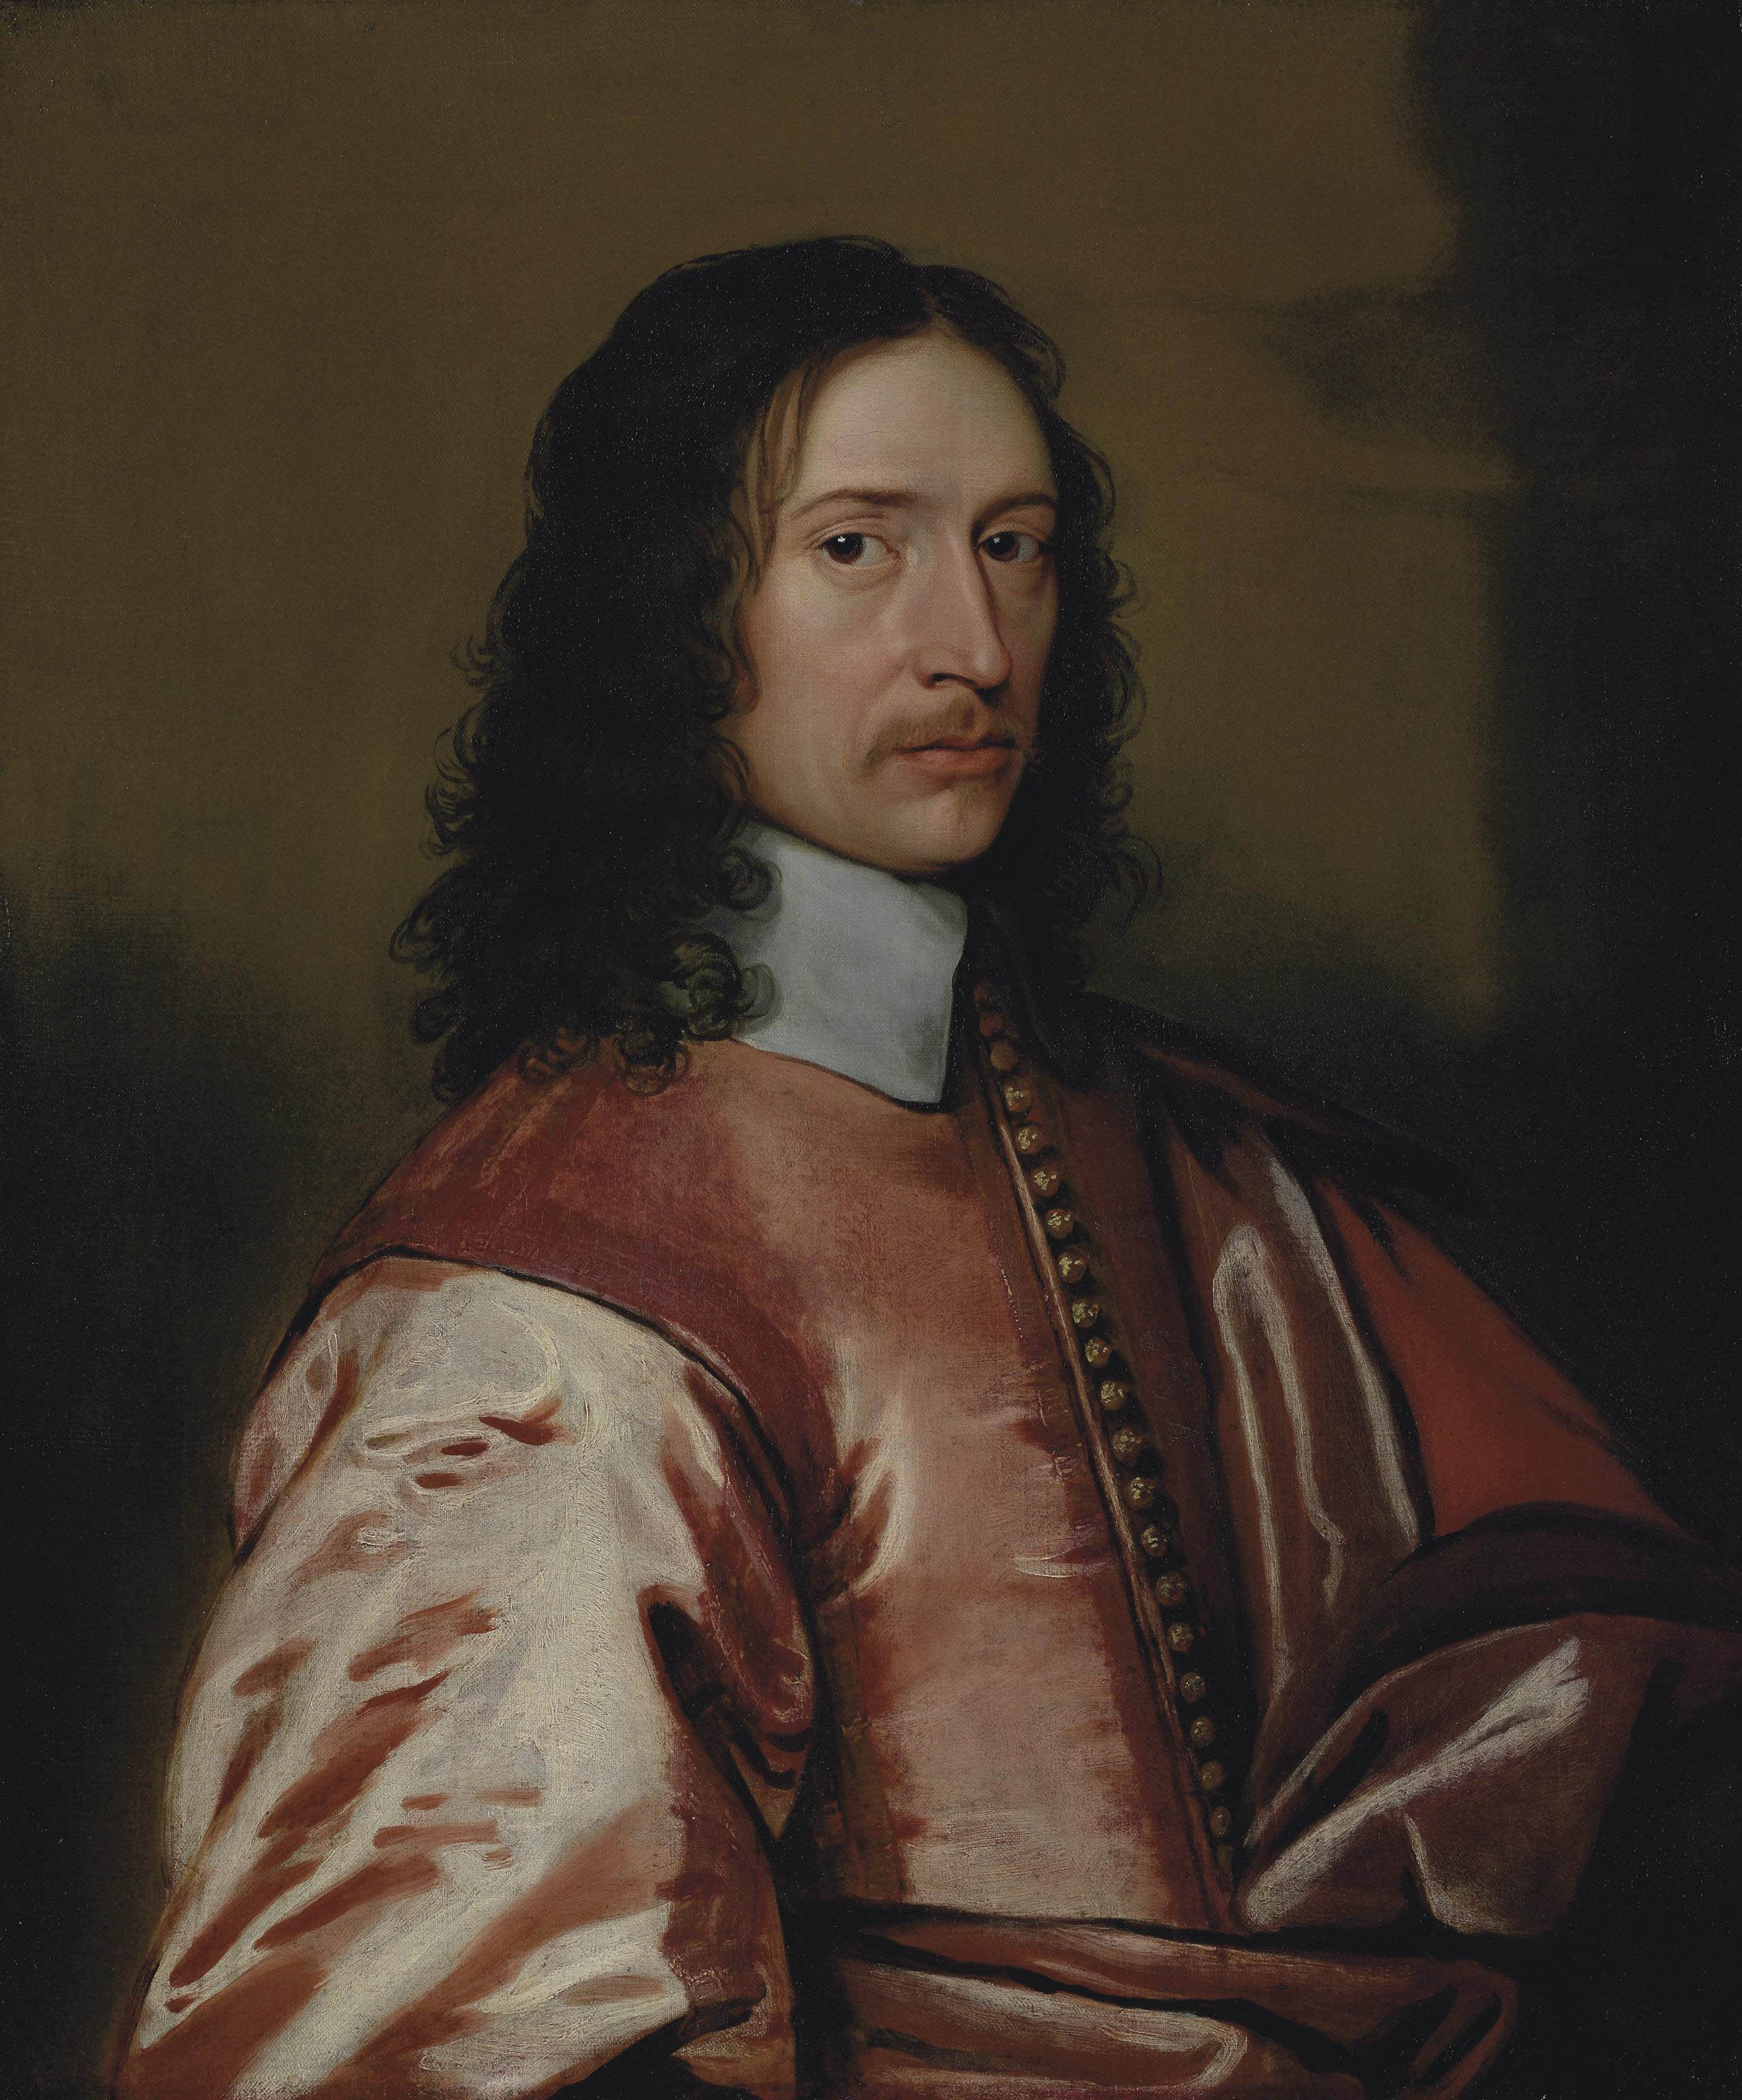 Portrait of Sir Humphrey Style, 1st Baronet (c.1596-1659), half-length, in a red coat with gold buttons